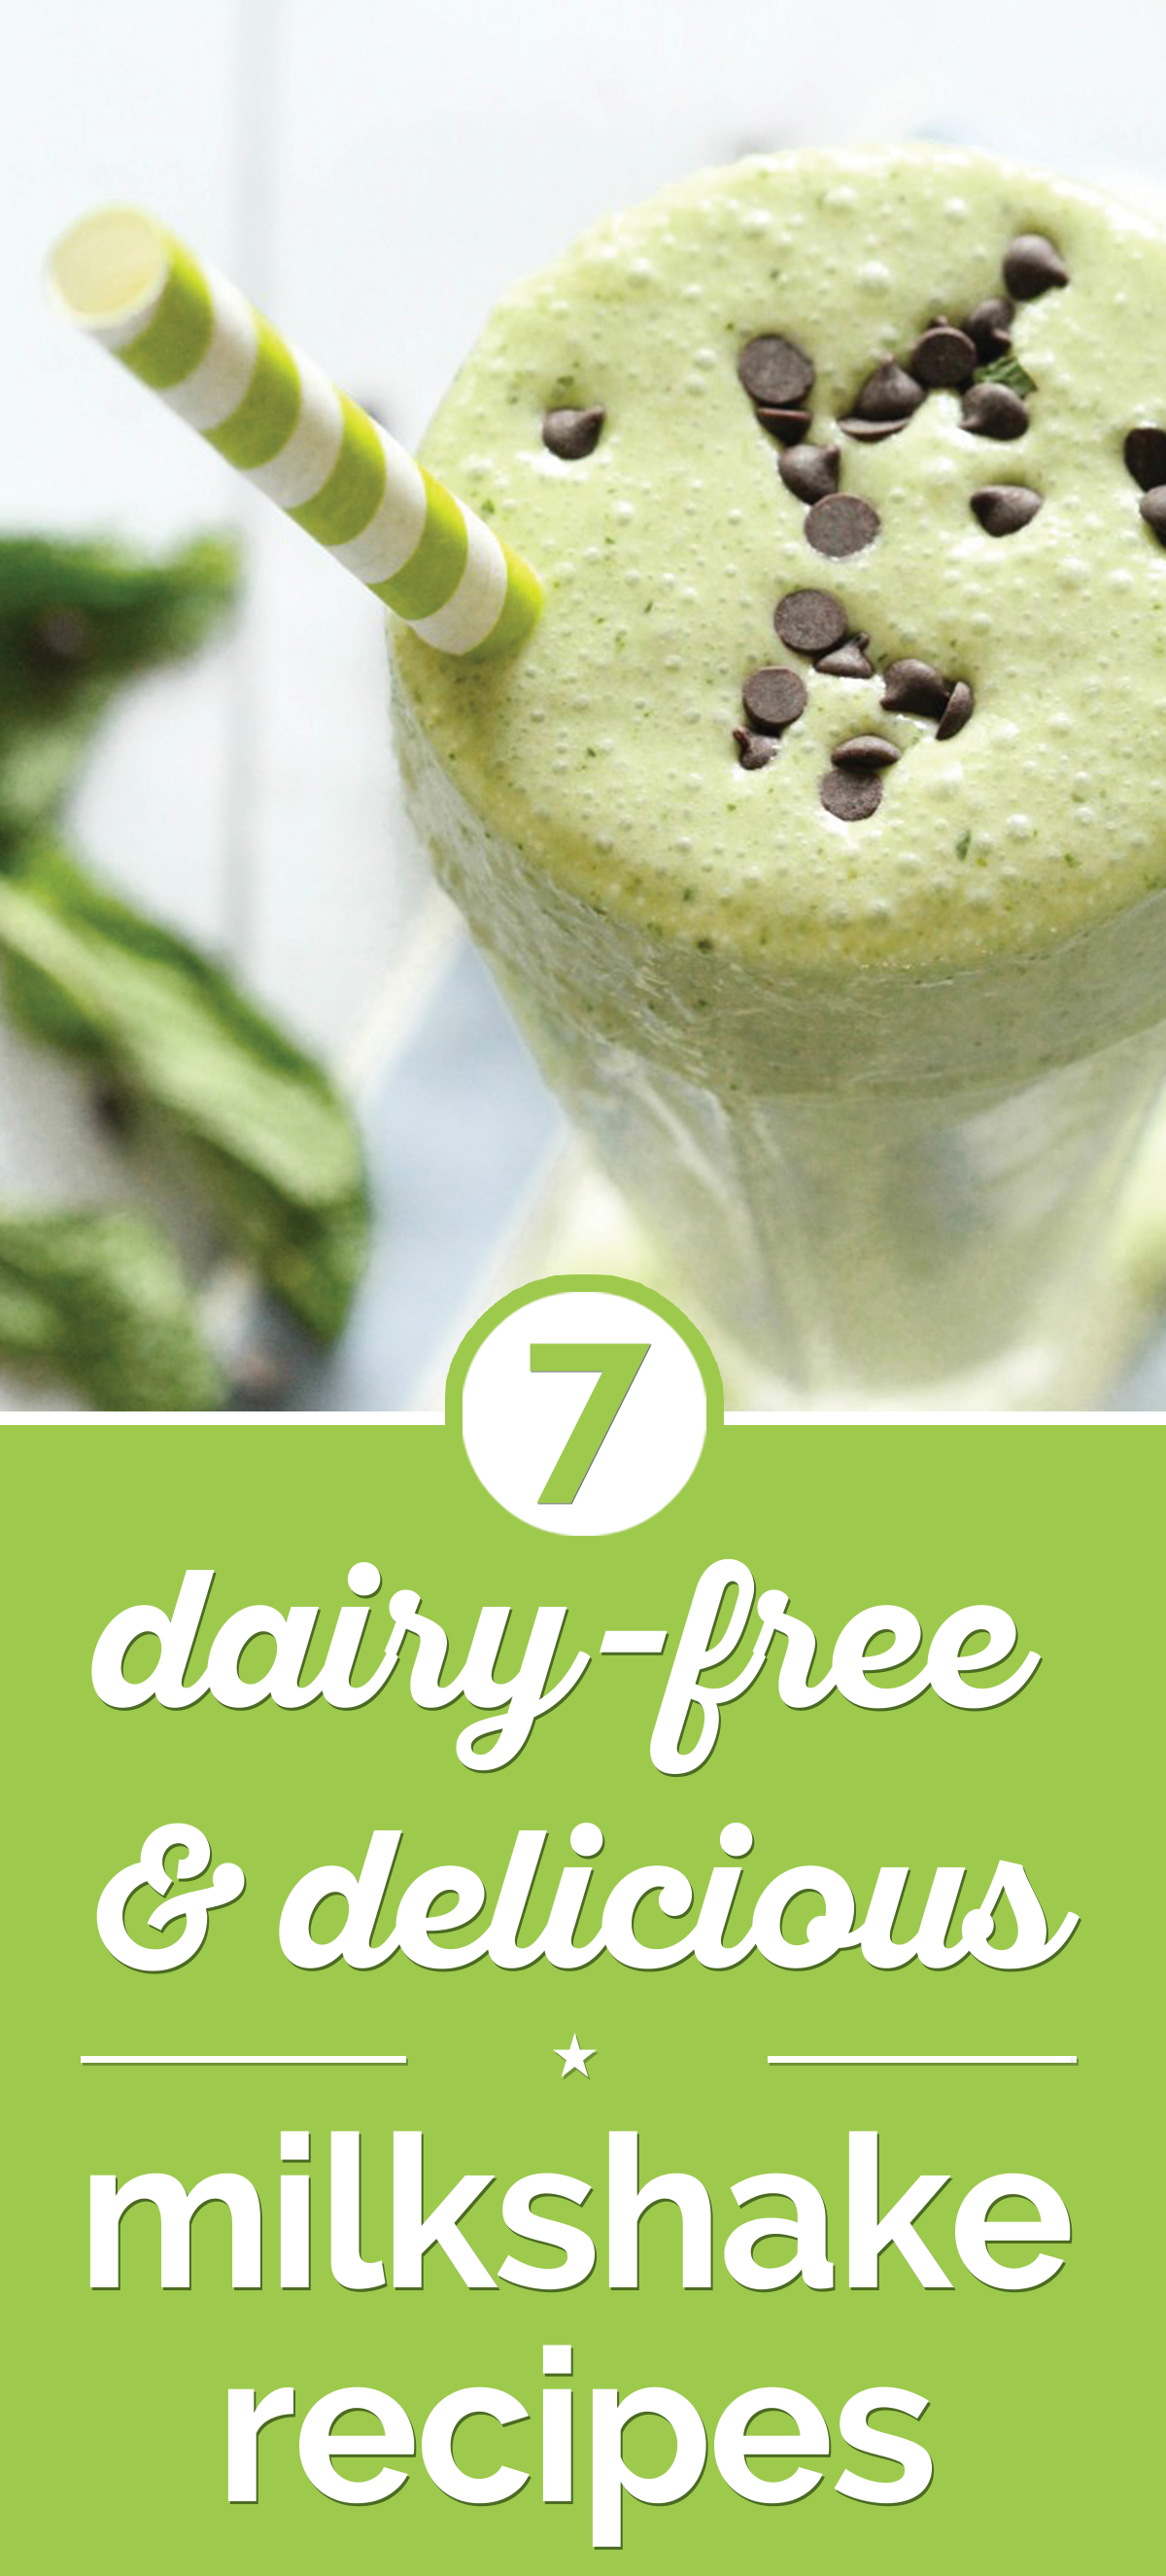 7 Dairy-Free & Delicious Milkshake Recipes | the good stuff